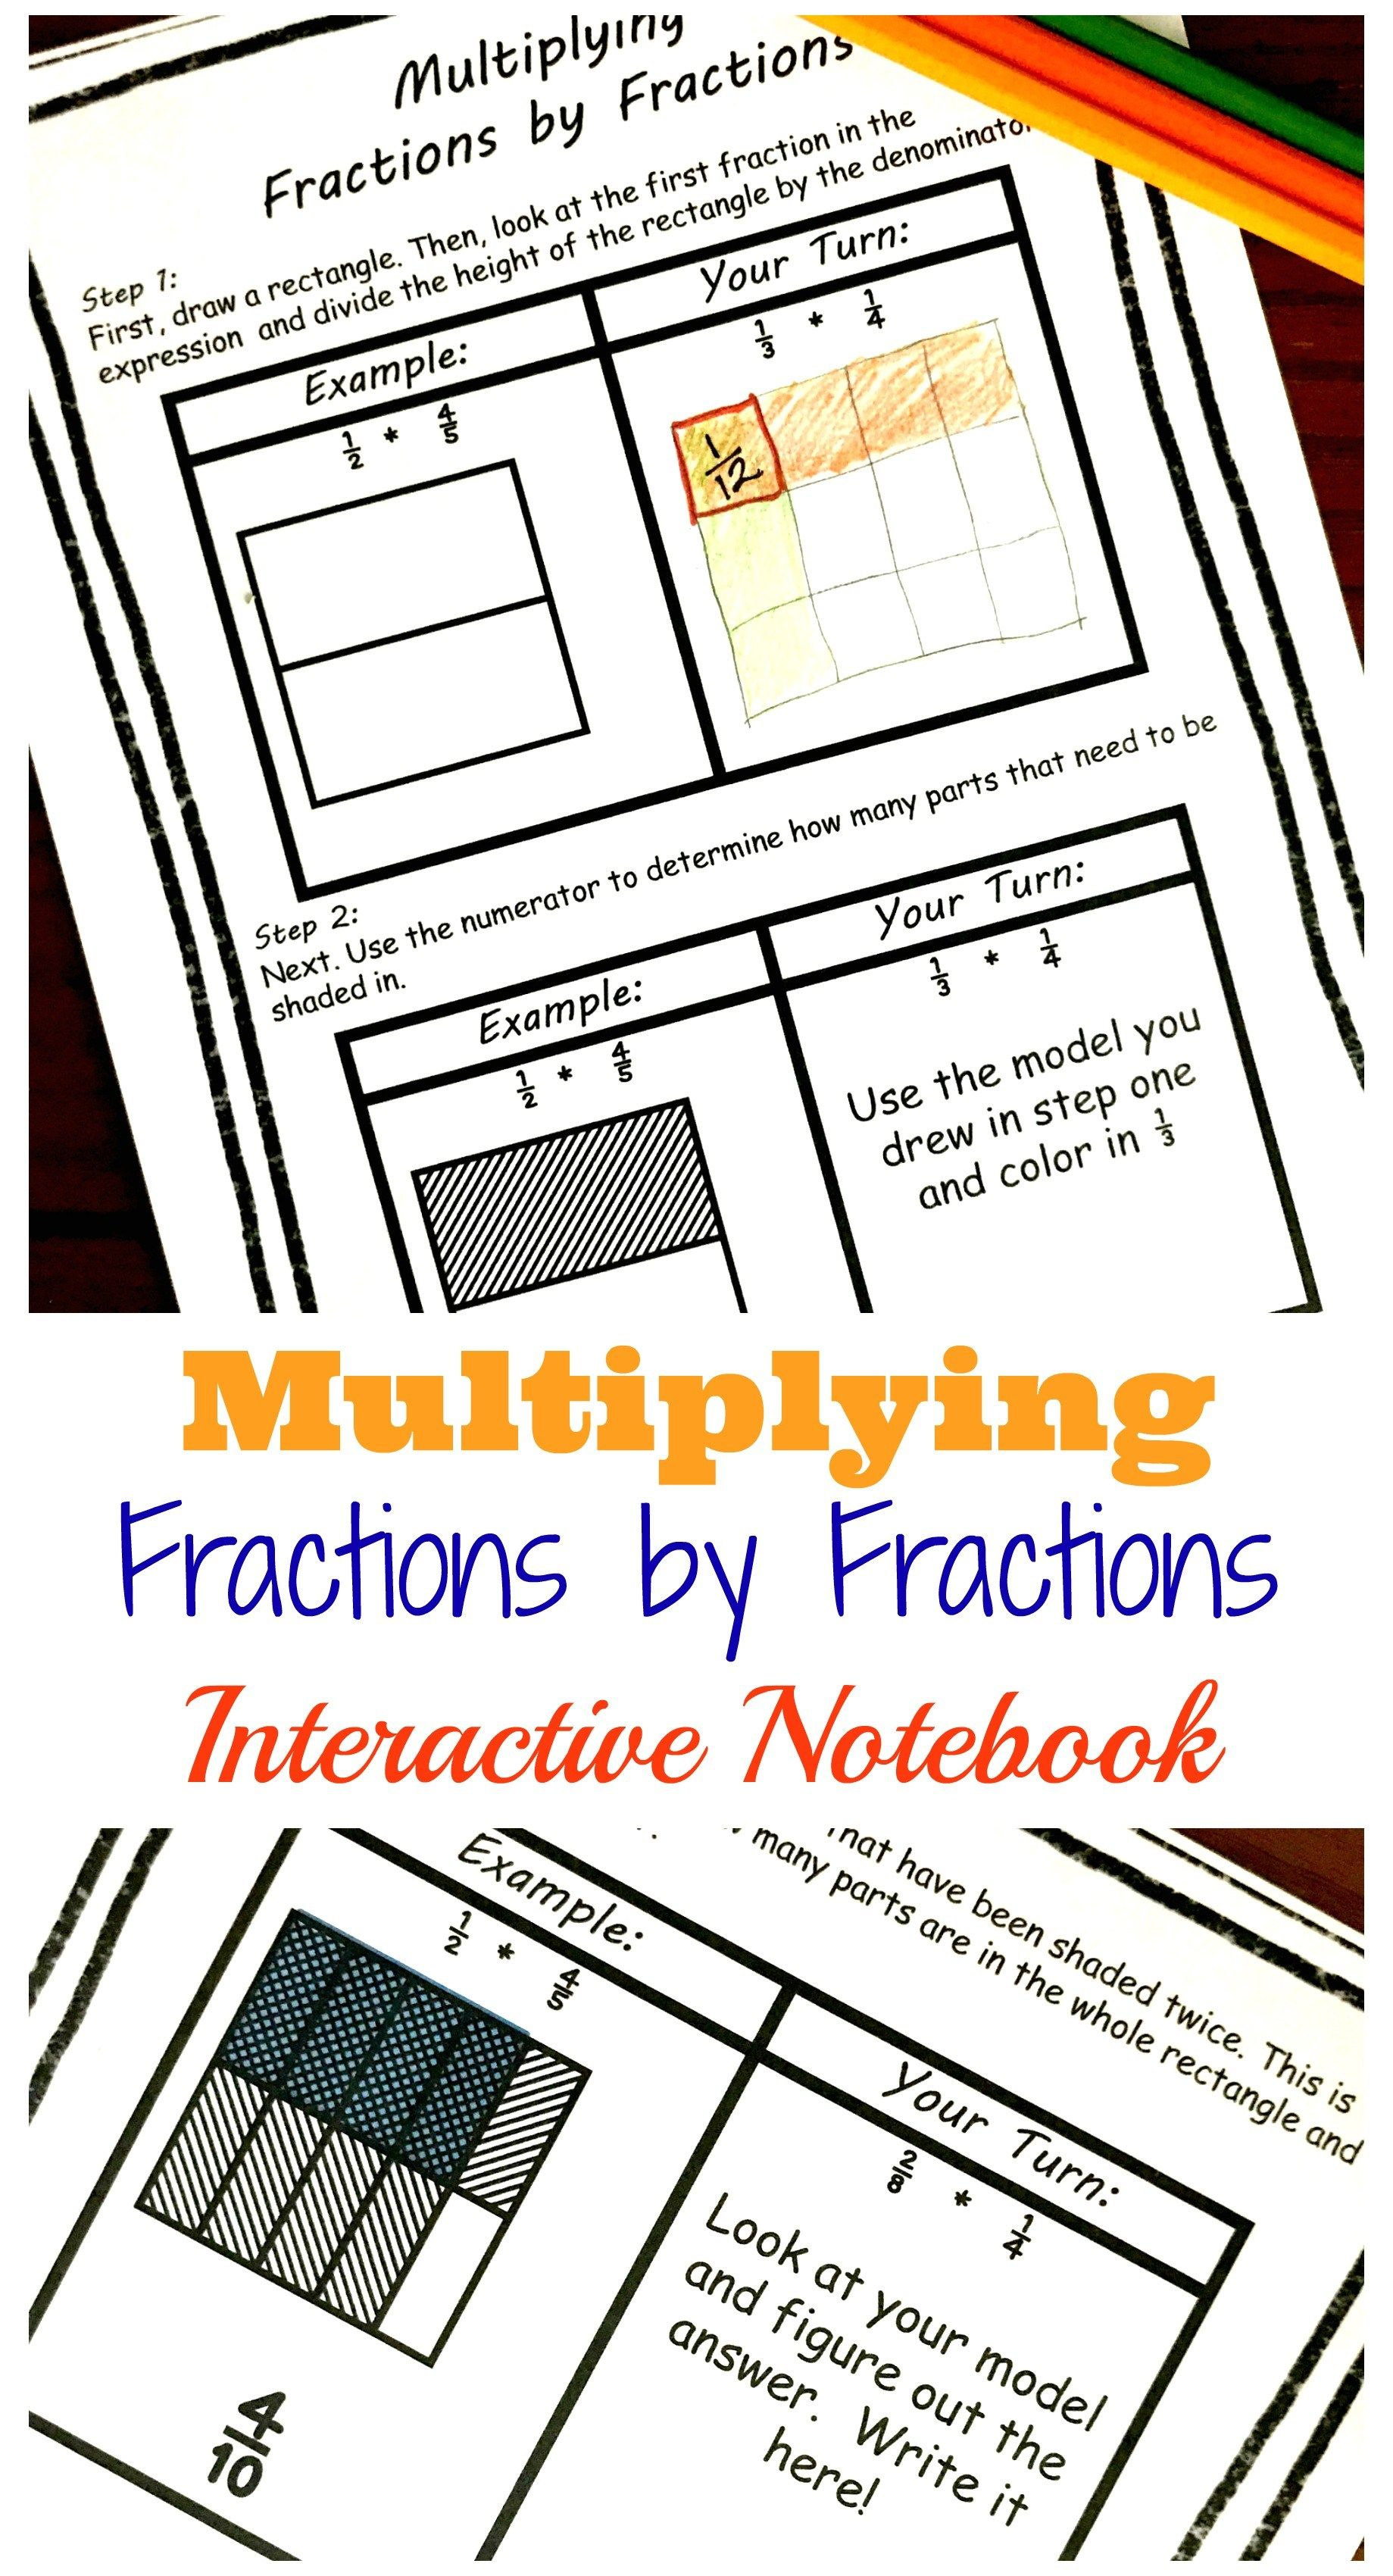 Step By Step Instructions For Multiplying Fractions With